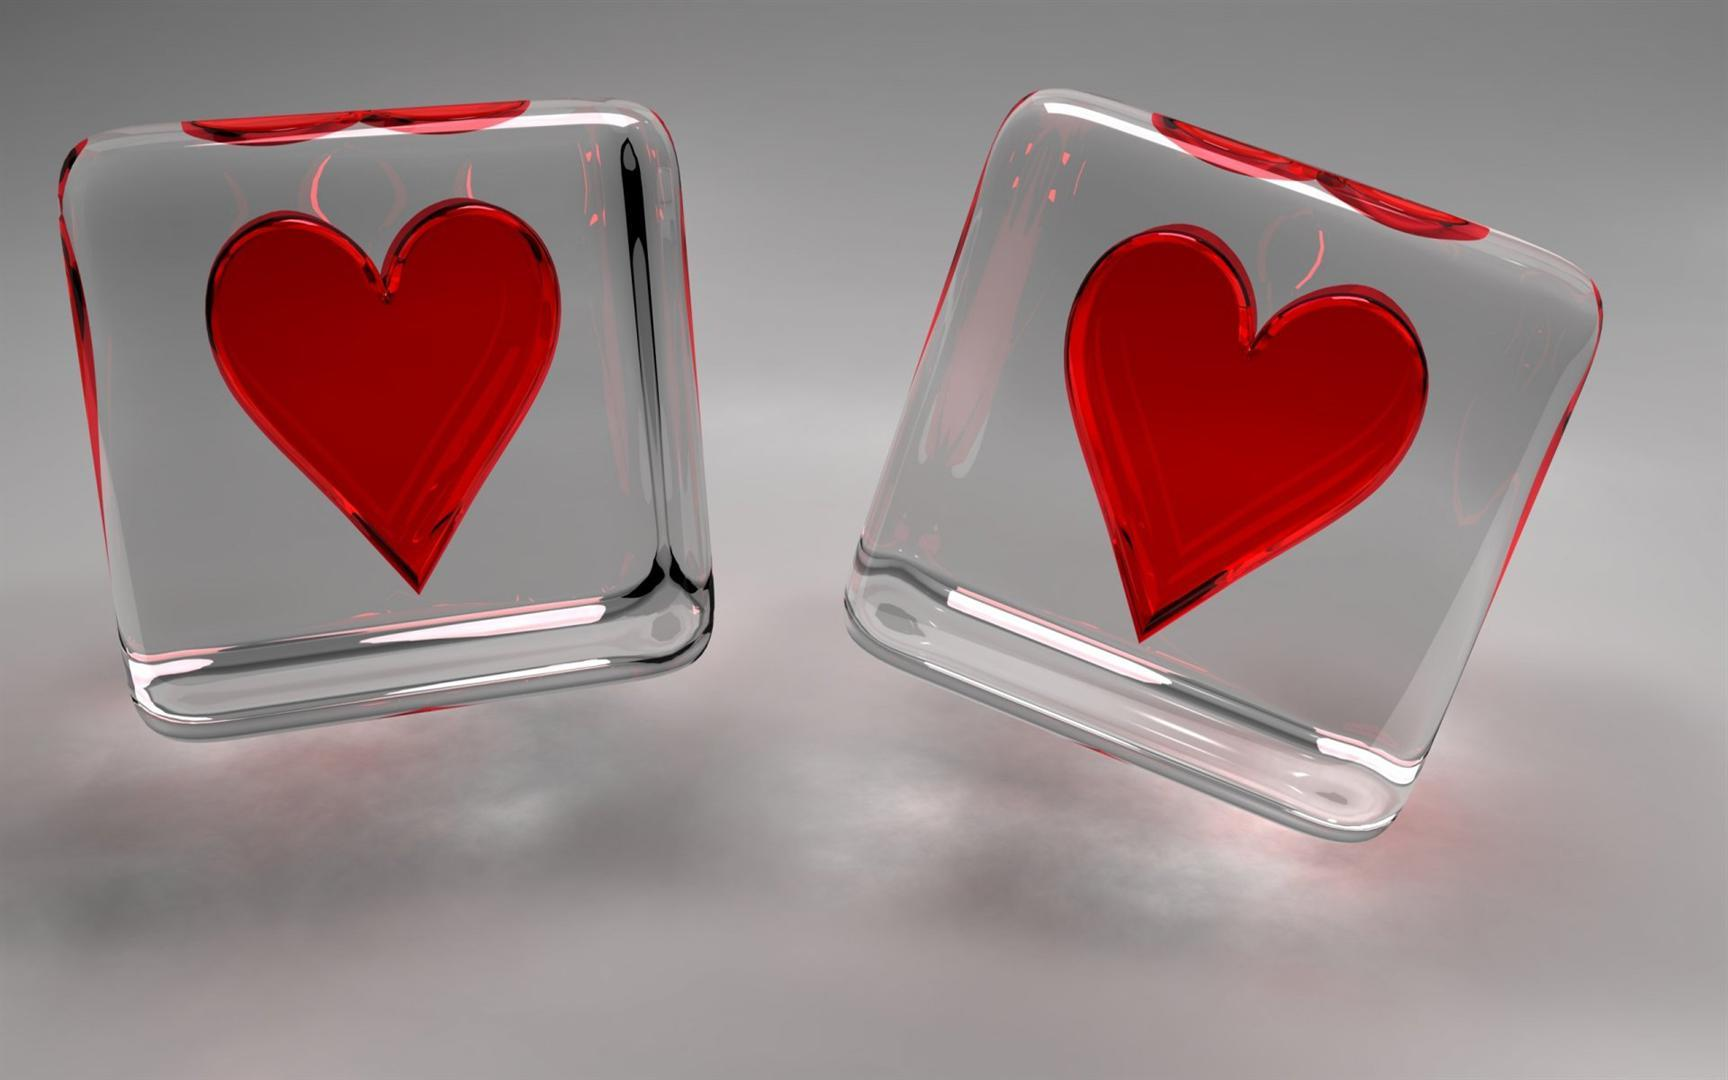 Love Heart Wallpaper Backgrounds 3d Wallpaper Cave